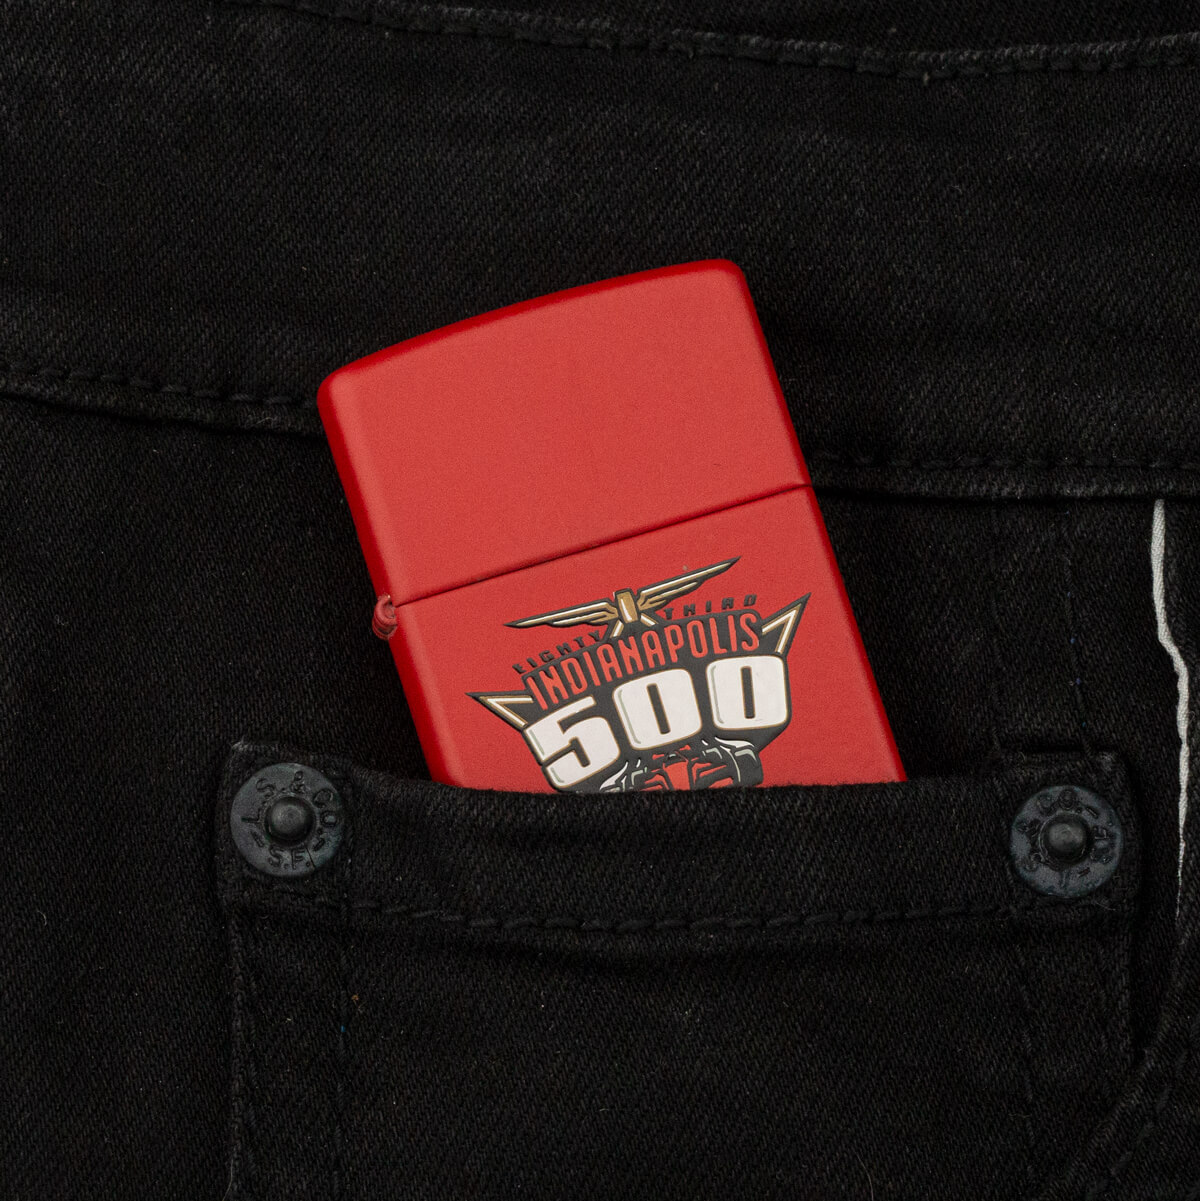 may-lua-zippo-indianapolis-500-red-matte-xiv-1998-son-tinh-dien-do-moc-loi-hiem